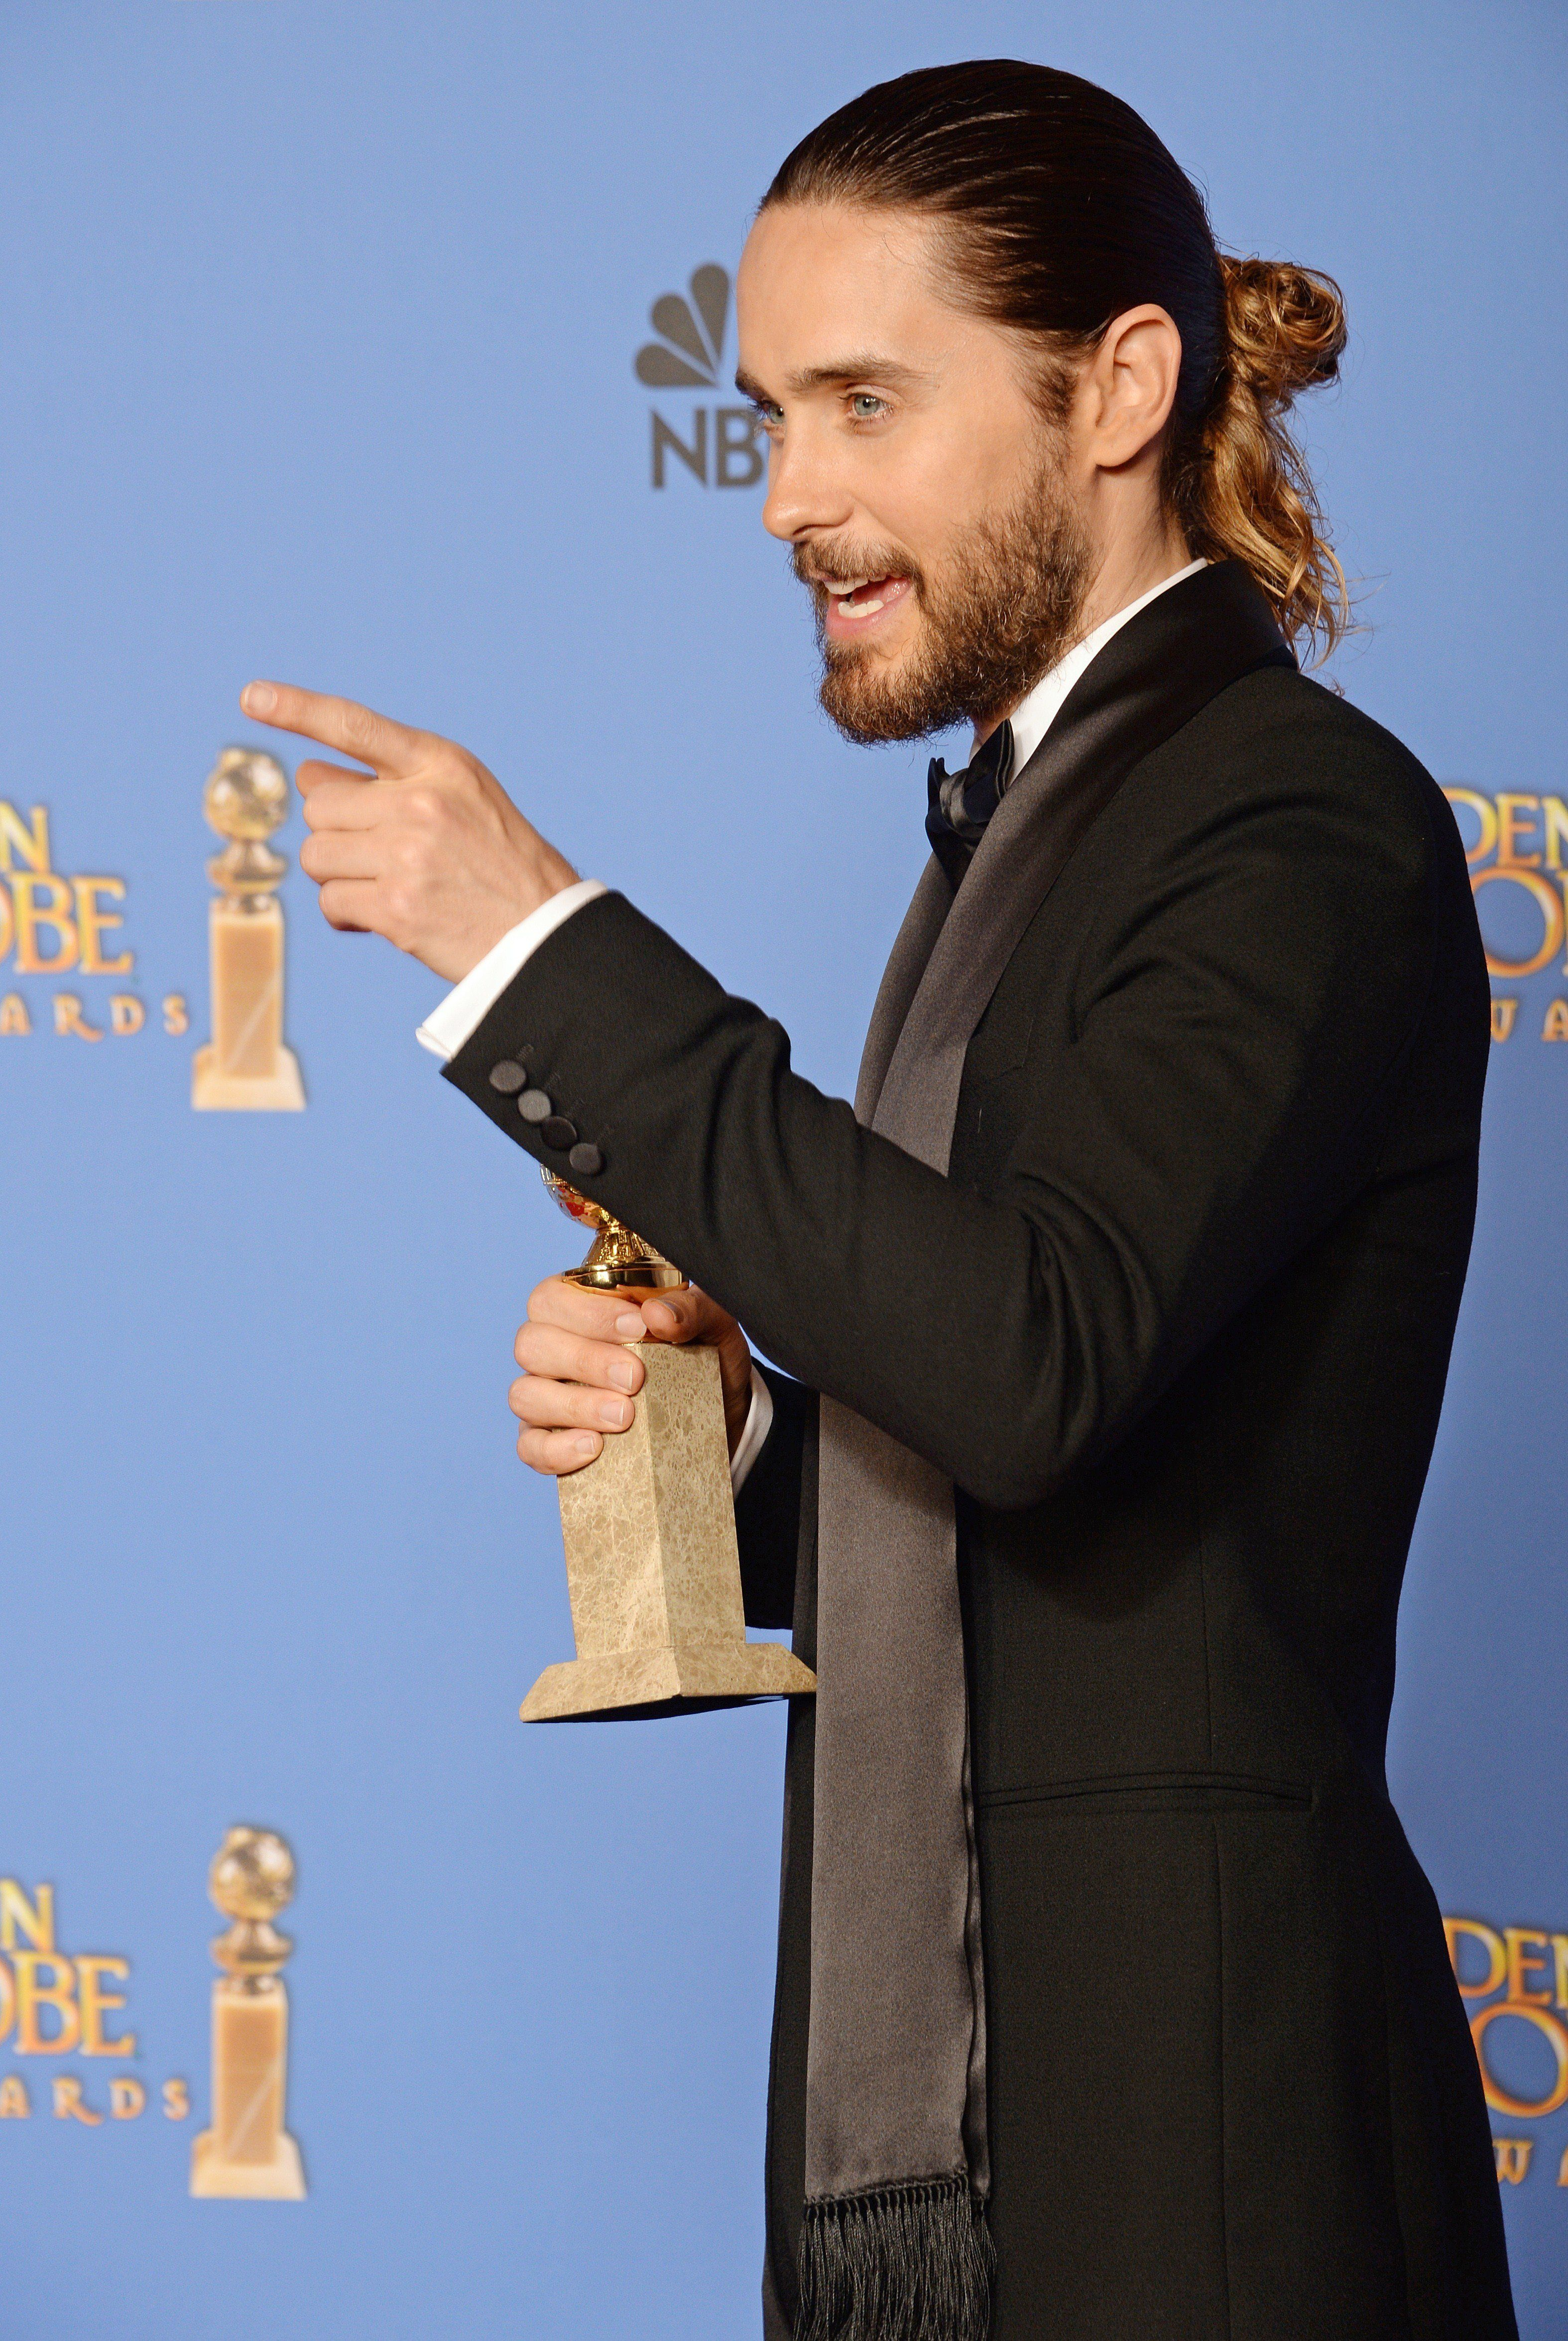 Actor Jared Leto, winner of the Best Supporting Actor in a Motion Picture - Drama, Musical or Comedy award for 'Dallas Buyers Club,' poses in the press room at the 71st Annual Golden Globe Awards in Beverly Hills, California, January 12, 2014. AFP PHOTO / ROBYN BECK        (Photo credit should read ROBYN BECK/AFP/Getty Images)